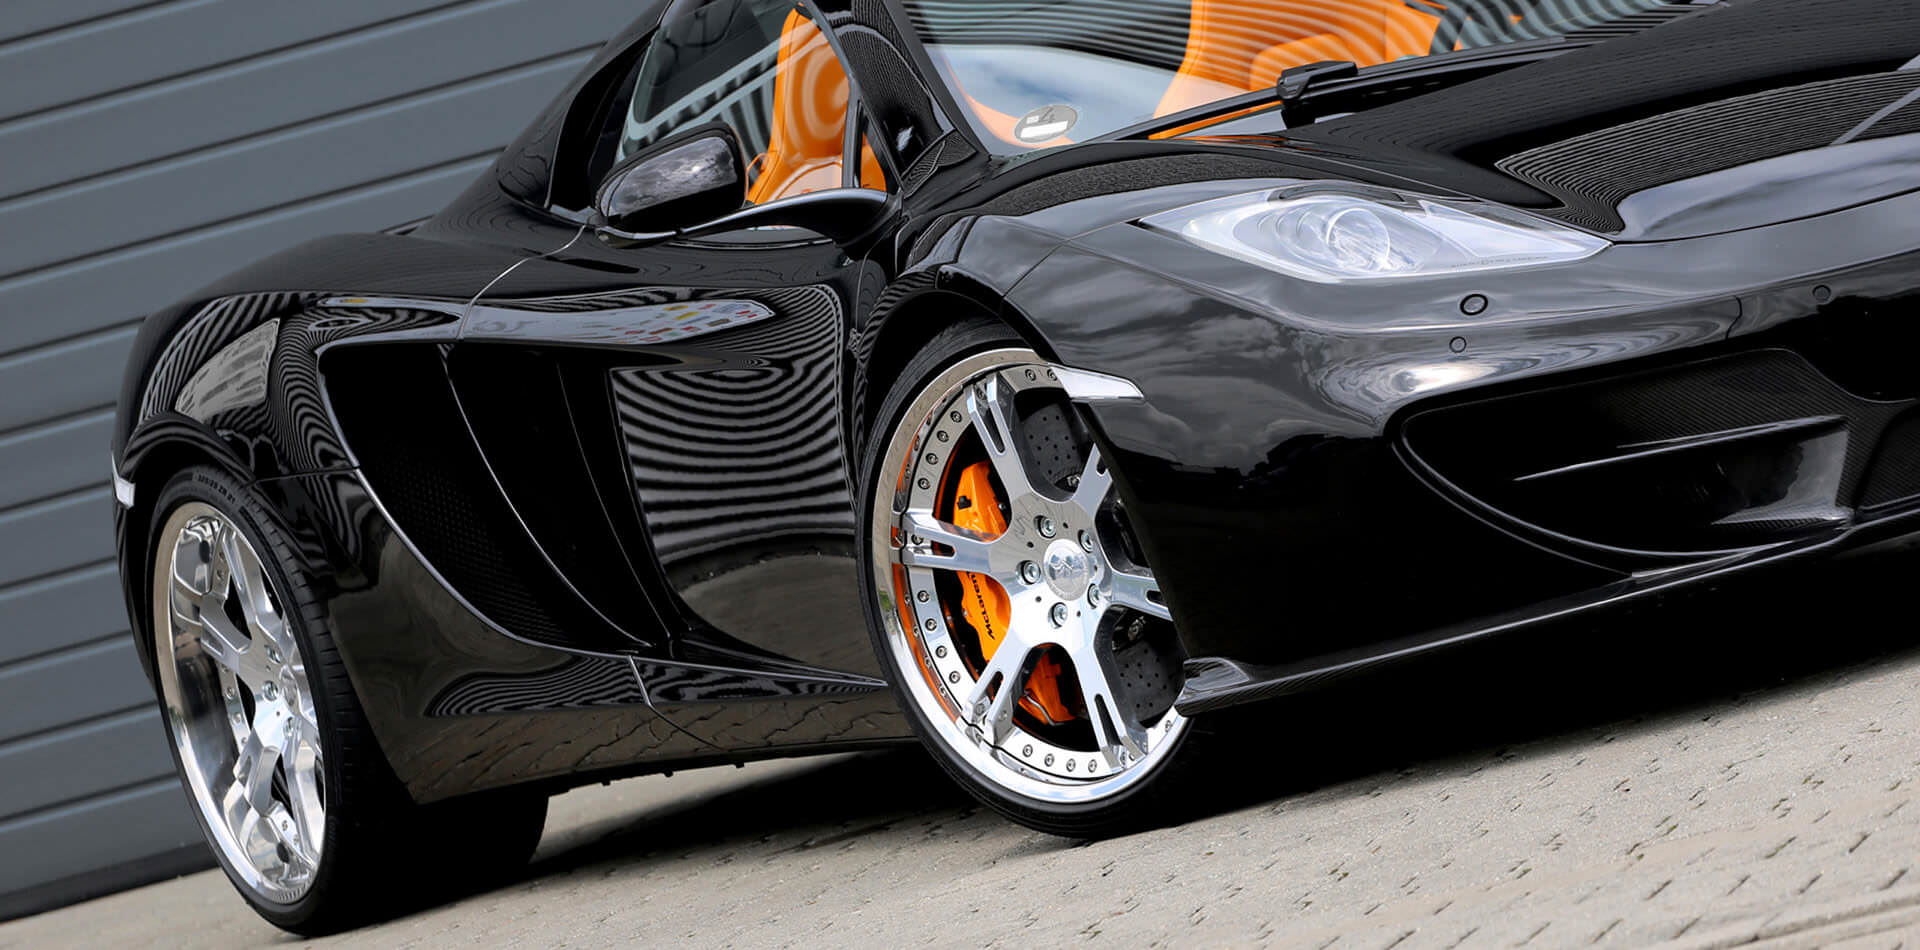 Power_Upgrade_MC_Laren_MP4_12C_wheelsandmore